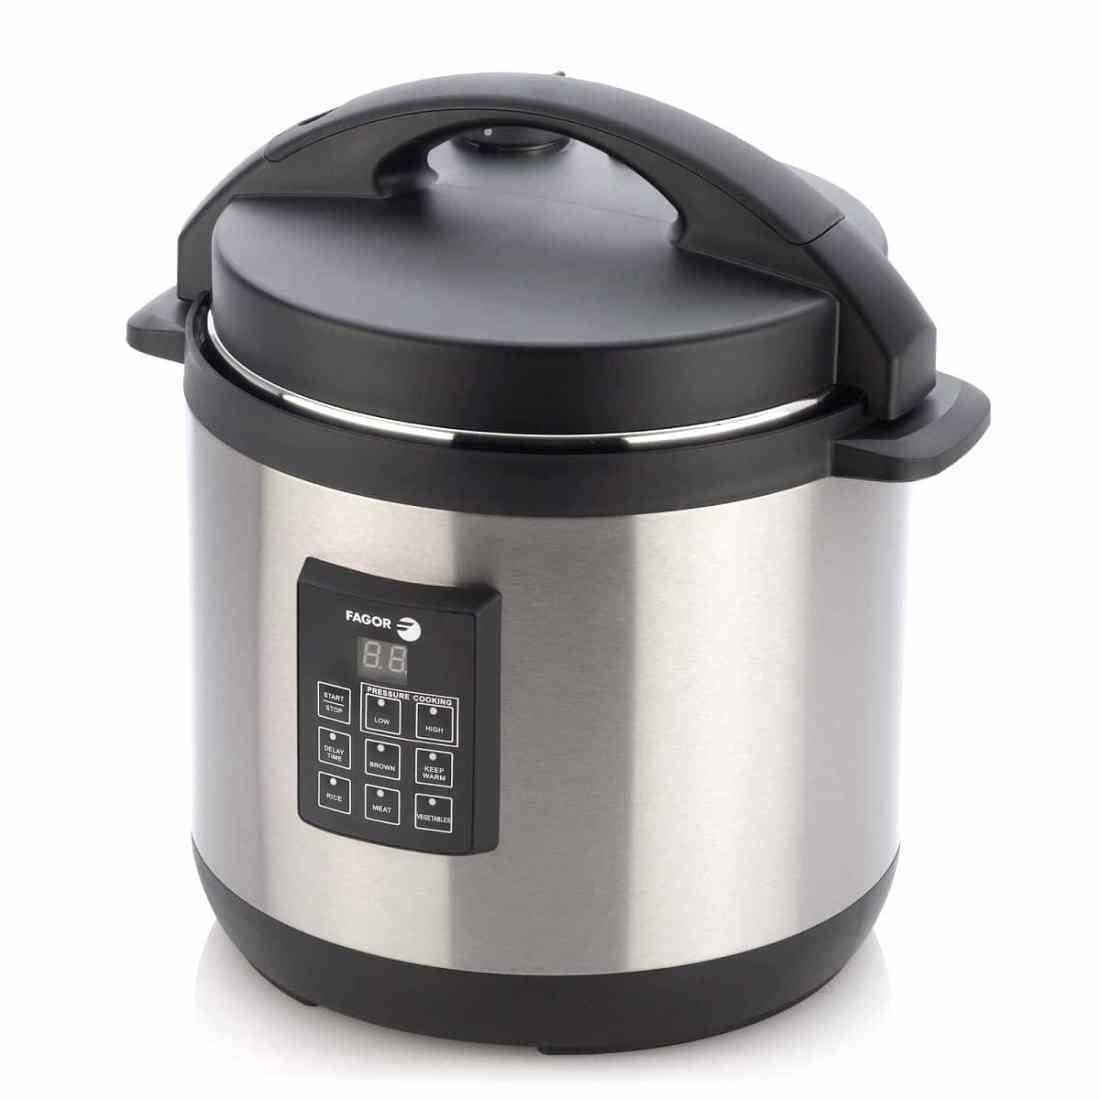 Stainless steel and black Fagor pressure cooker